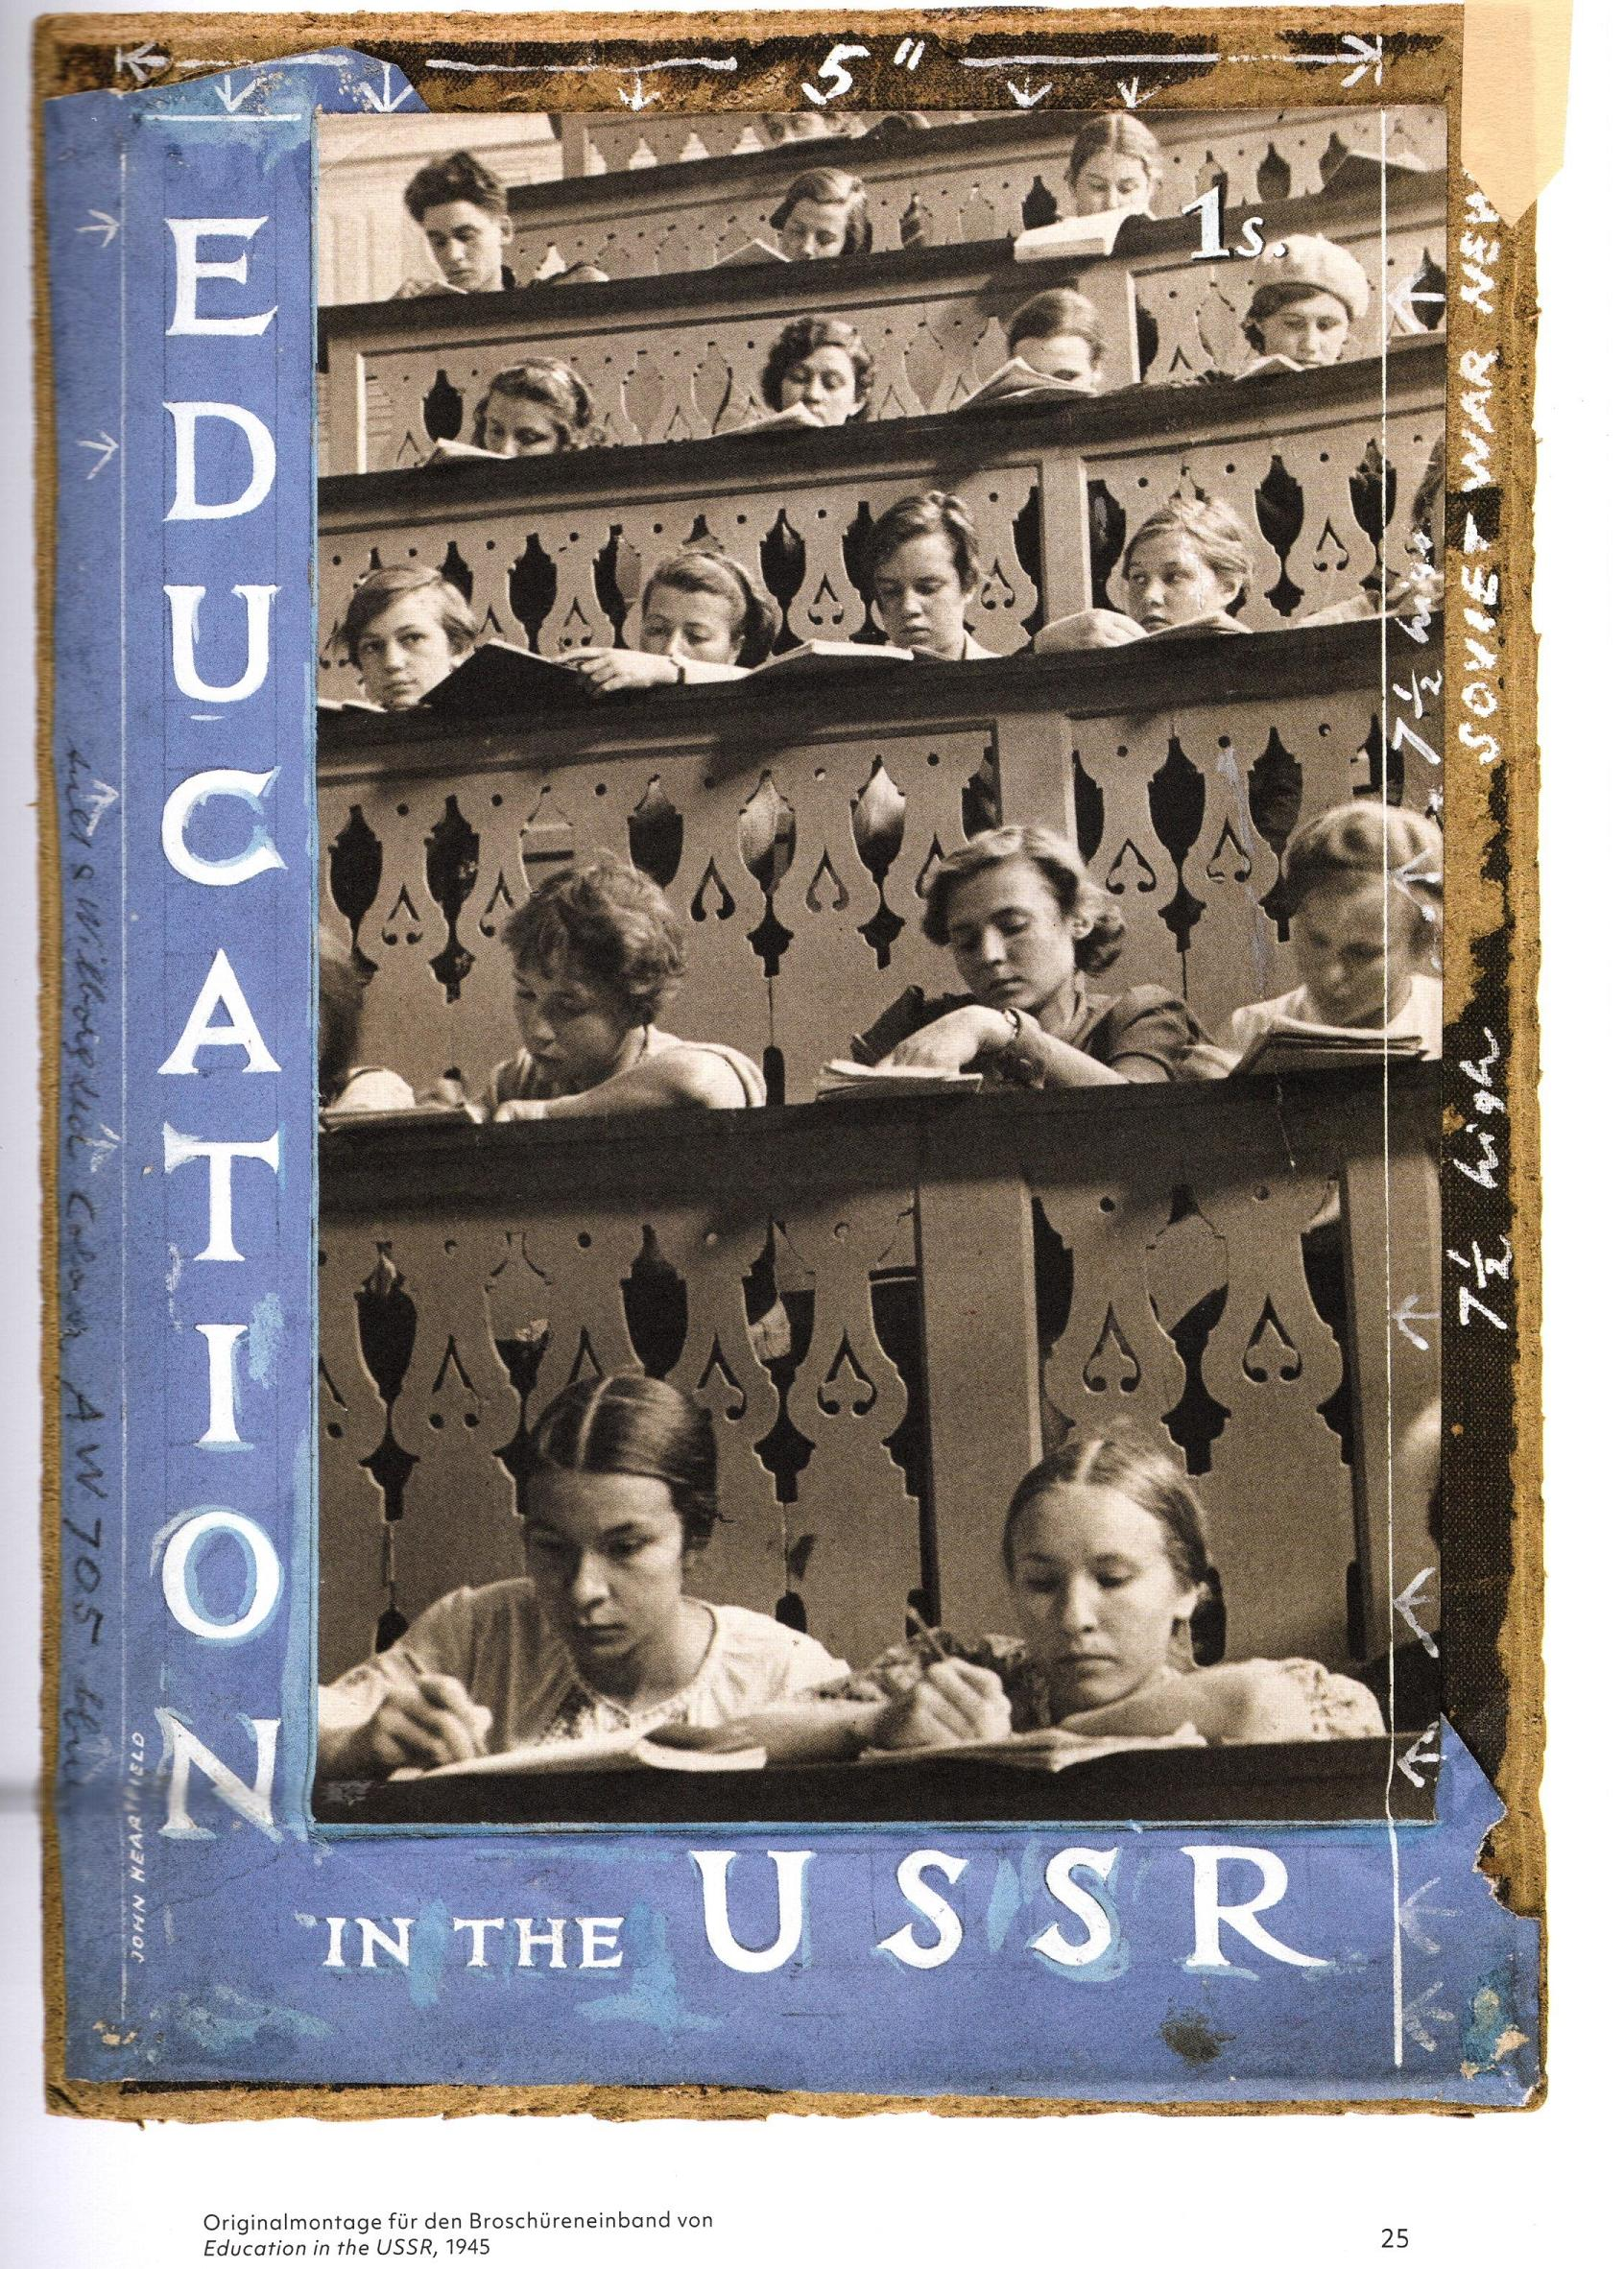 Education the USSR cover